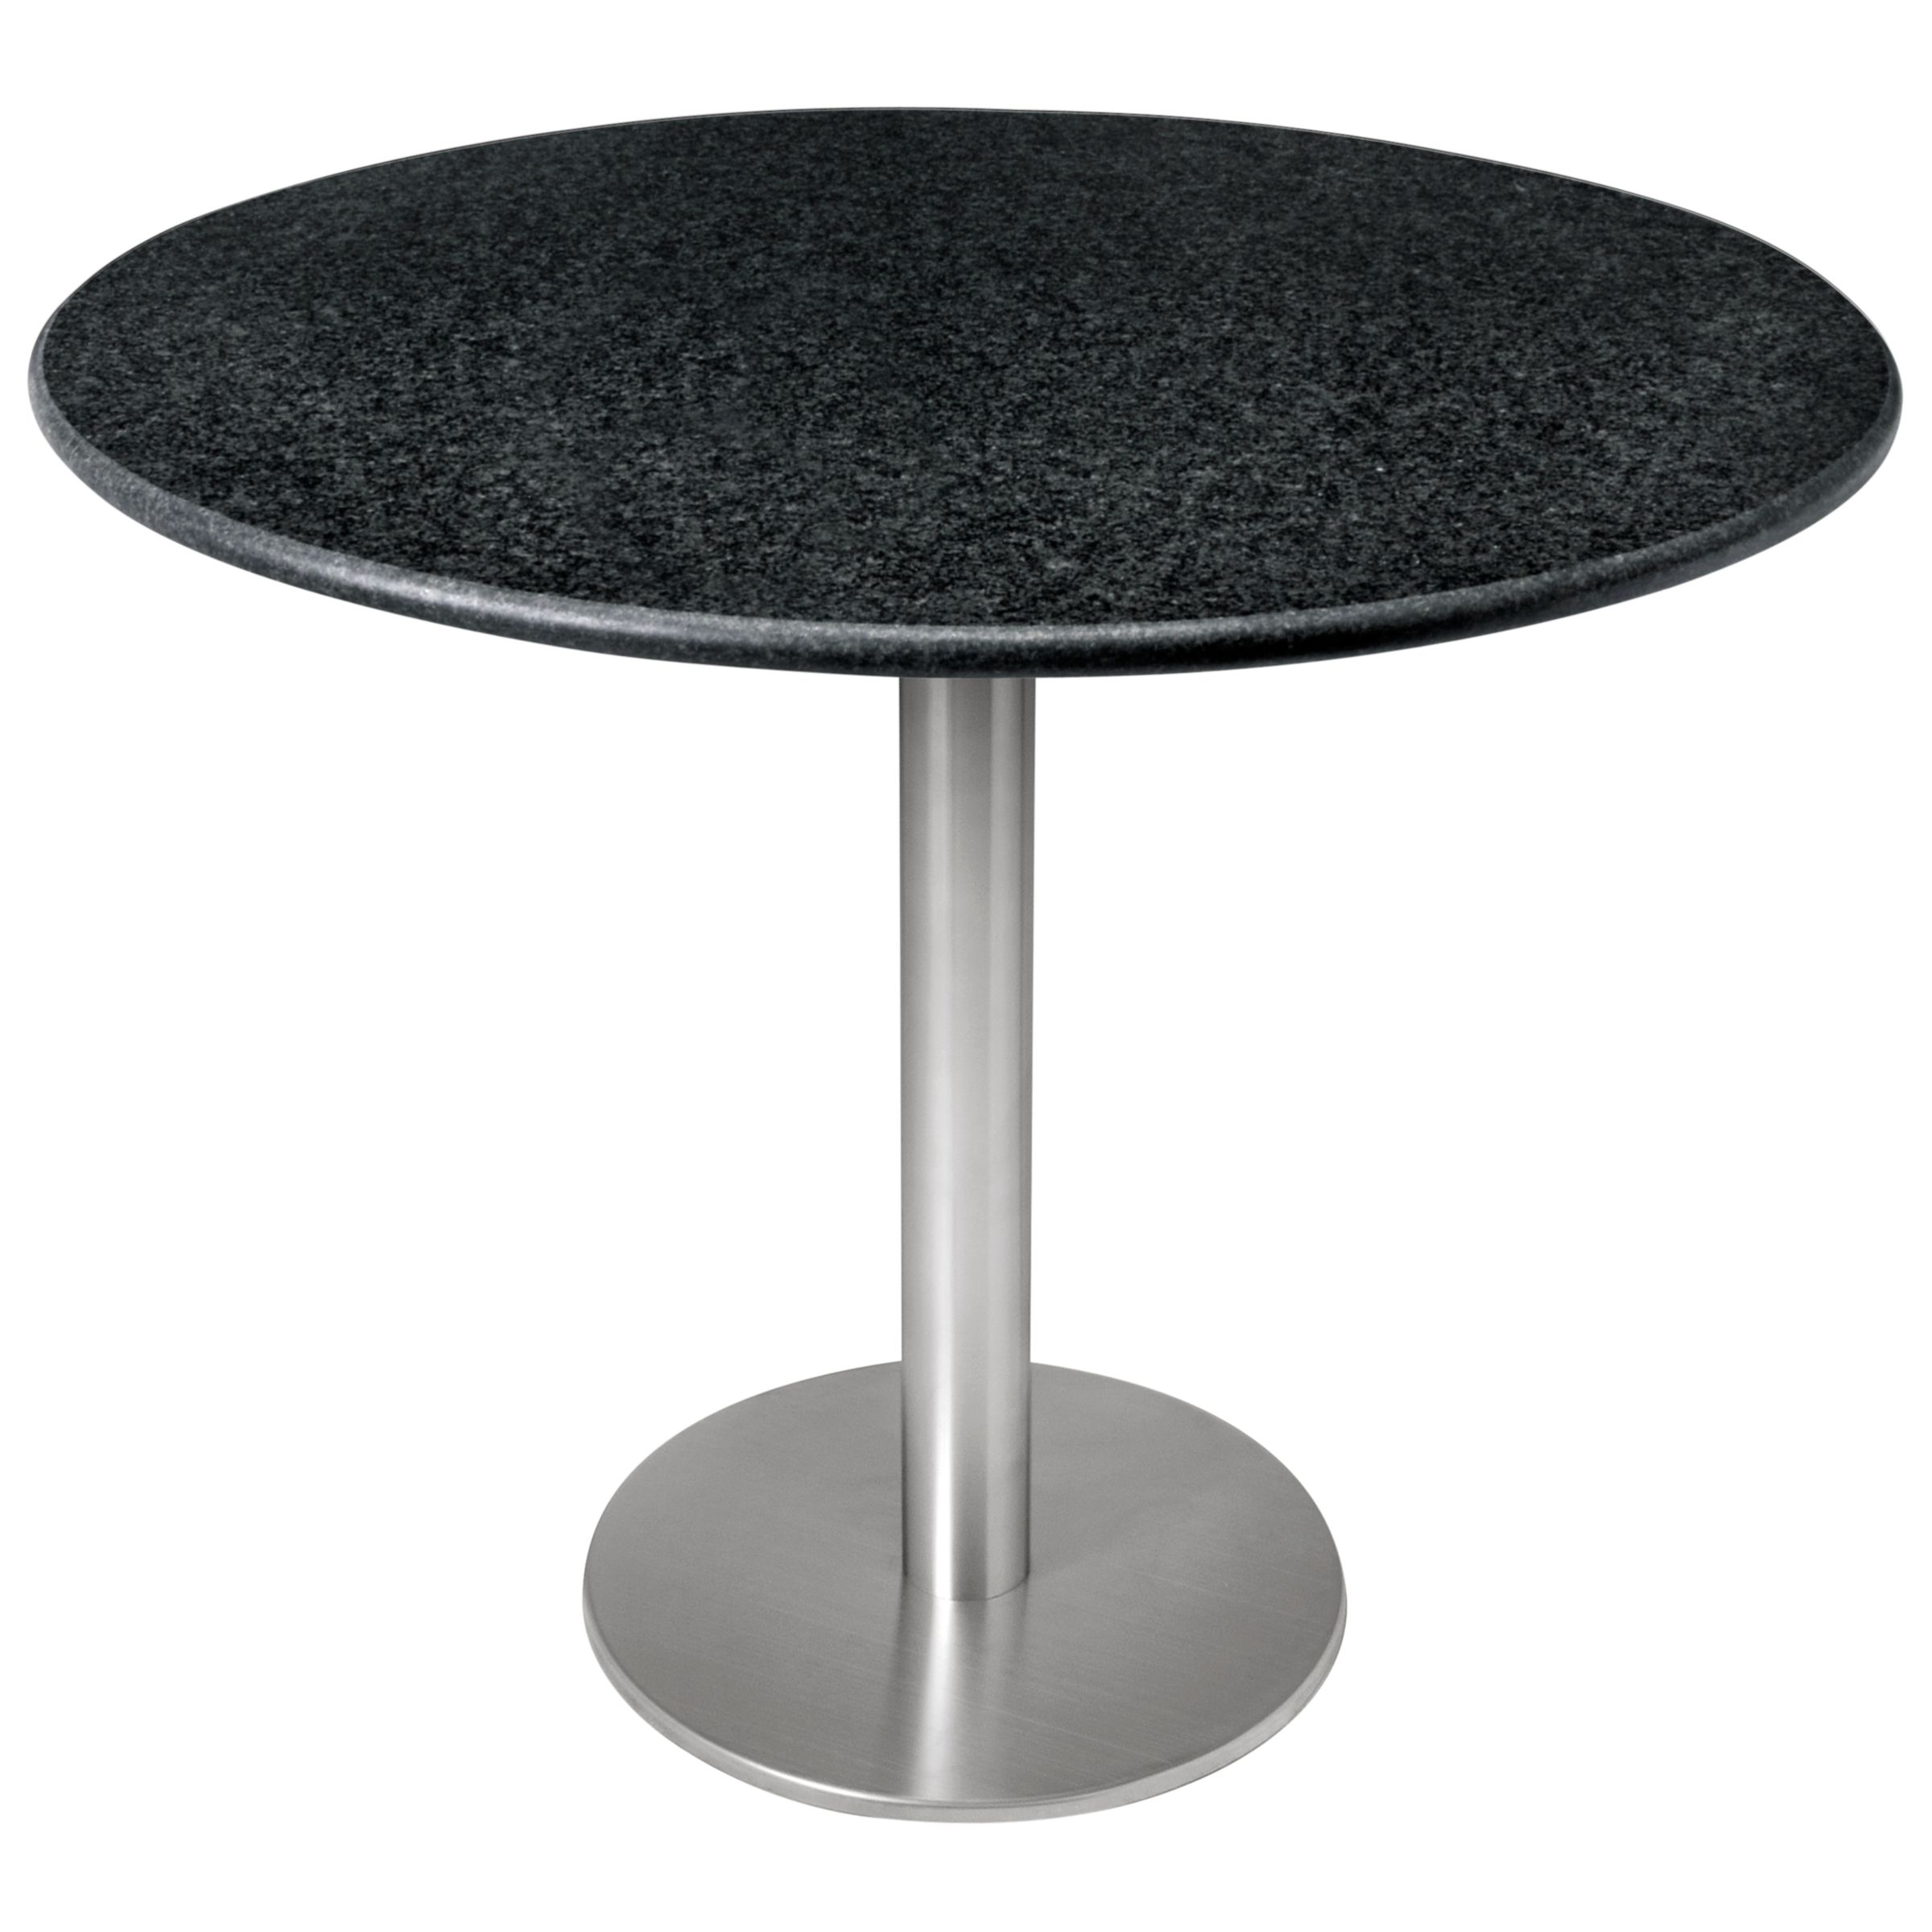 john lewis dining furniture reviews : 231289572 from www.comparestoreprices.co.uk size 1600 x 1600 jpeg 217kB